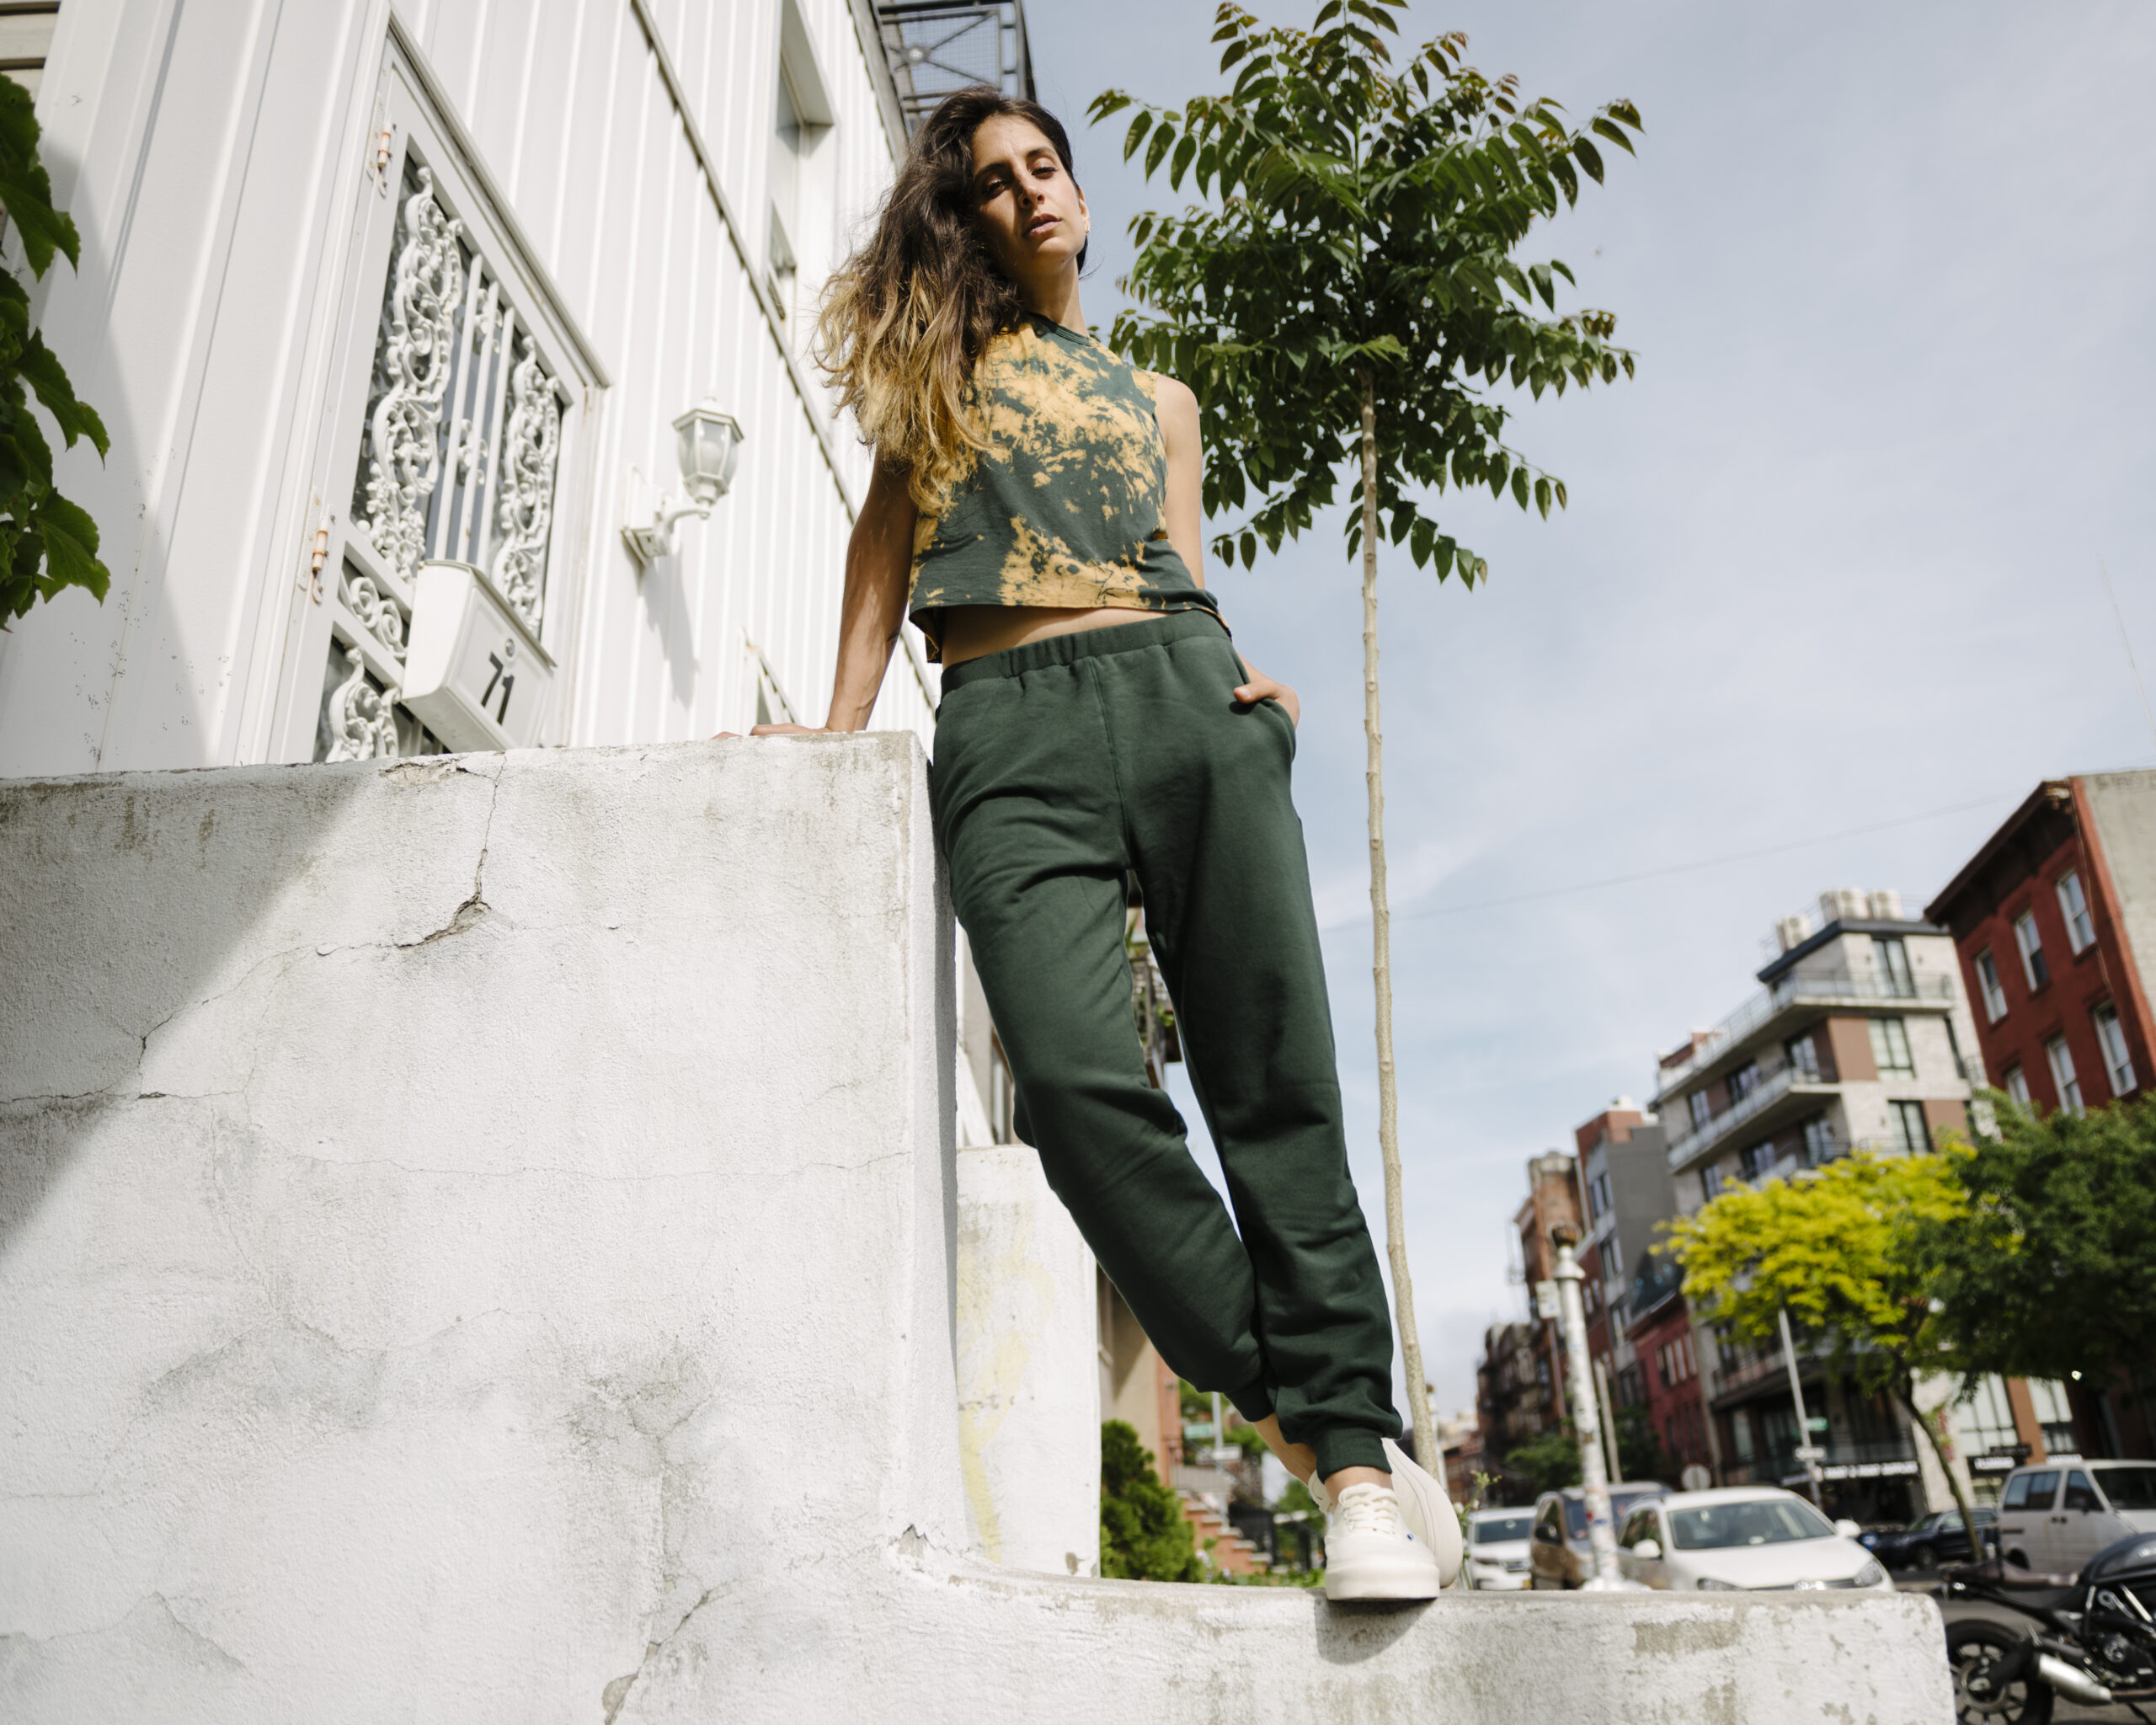 5 Sustainable, Eco-Friendly Fashion Brands to Shop During COVID-19